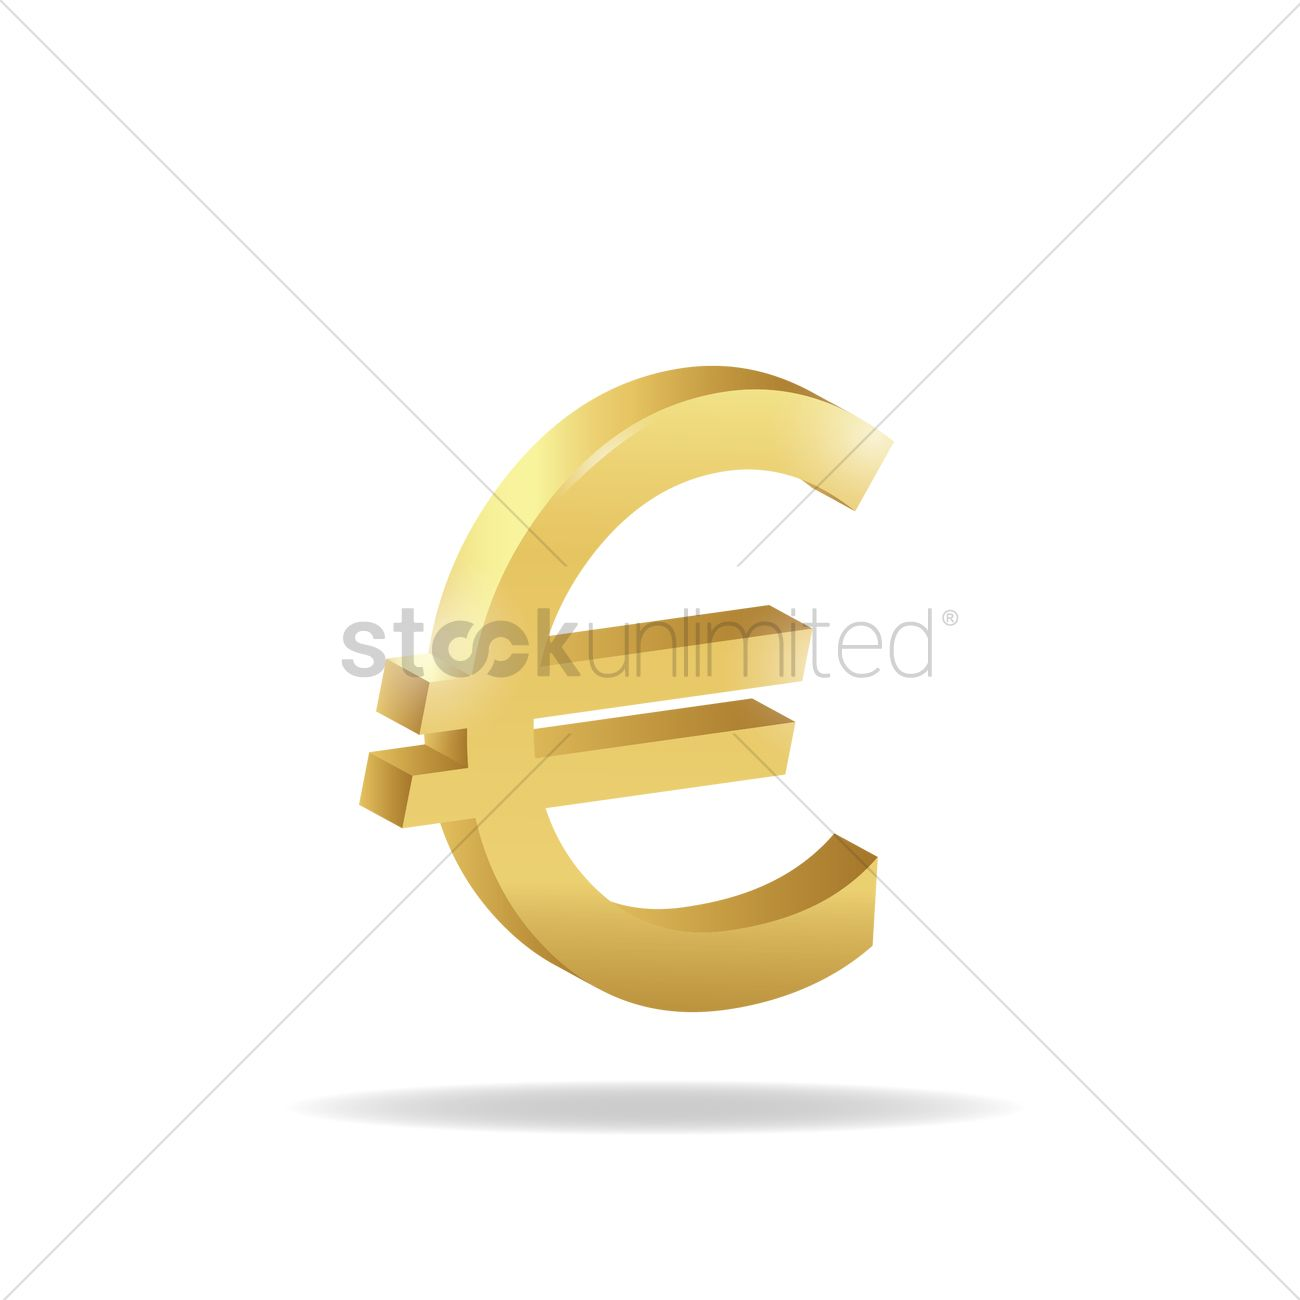 3d Euro Currency Symbol Vector Image 1827782 Stockunlimited